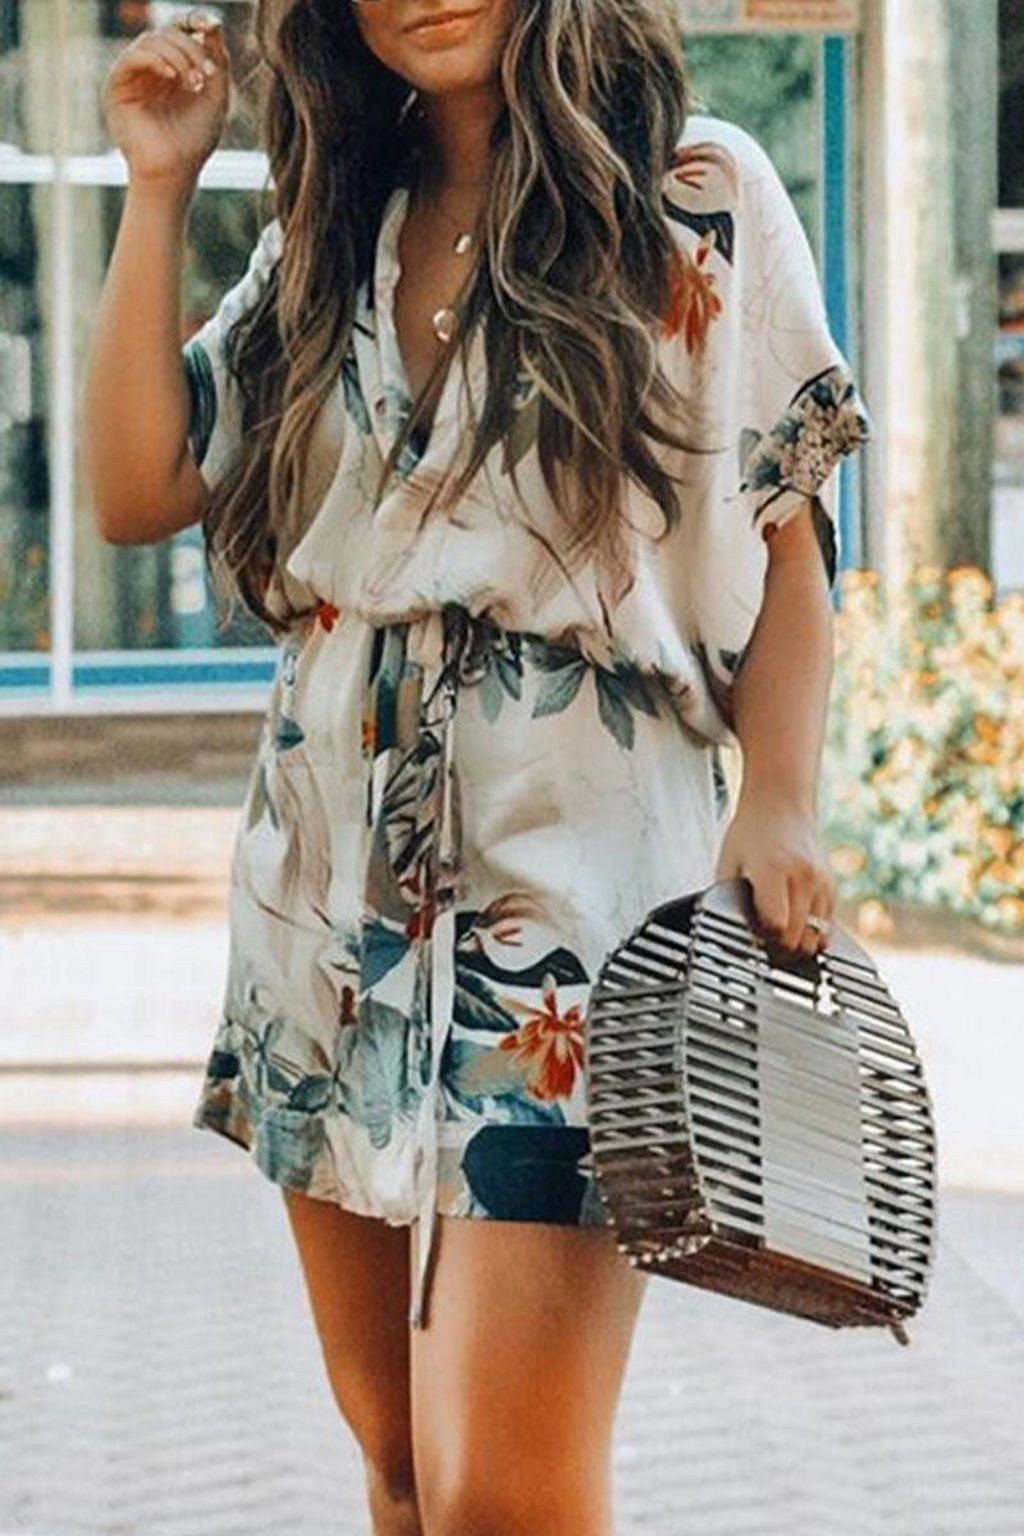 30 Fresh Summer Outfit Ideas For Women To Try In 2021 Casual Summer Dresses Cute Summer Outfits Mini Dress With Sleeves [ 1536 x 1024 Pixel ]